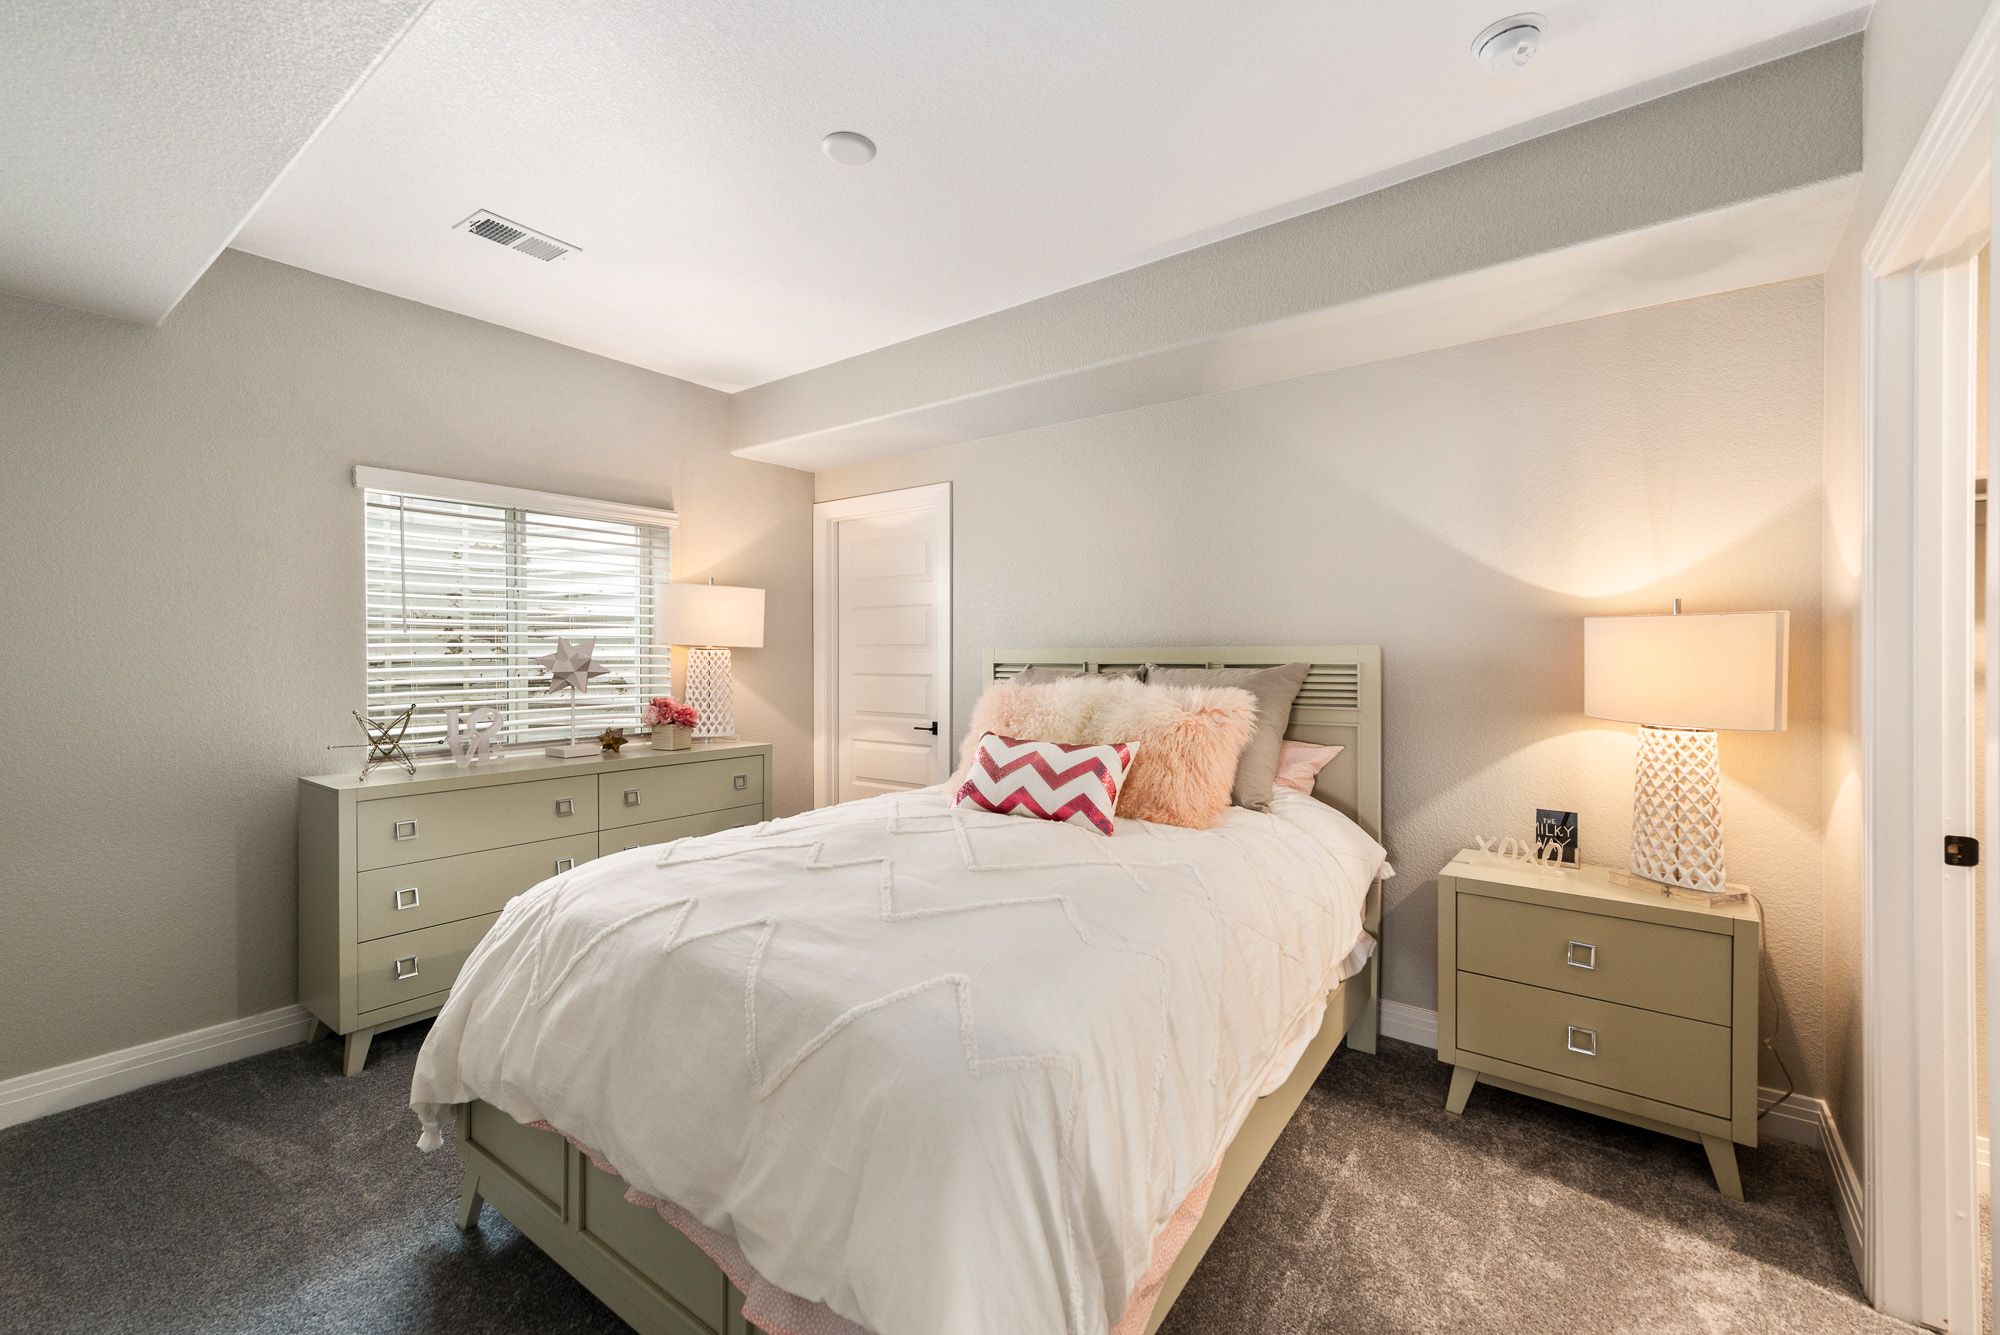 Bedroom featured in the Stella By Lokal Homes in Fort Collins-Loveland, CO